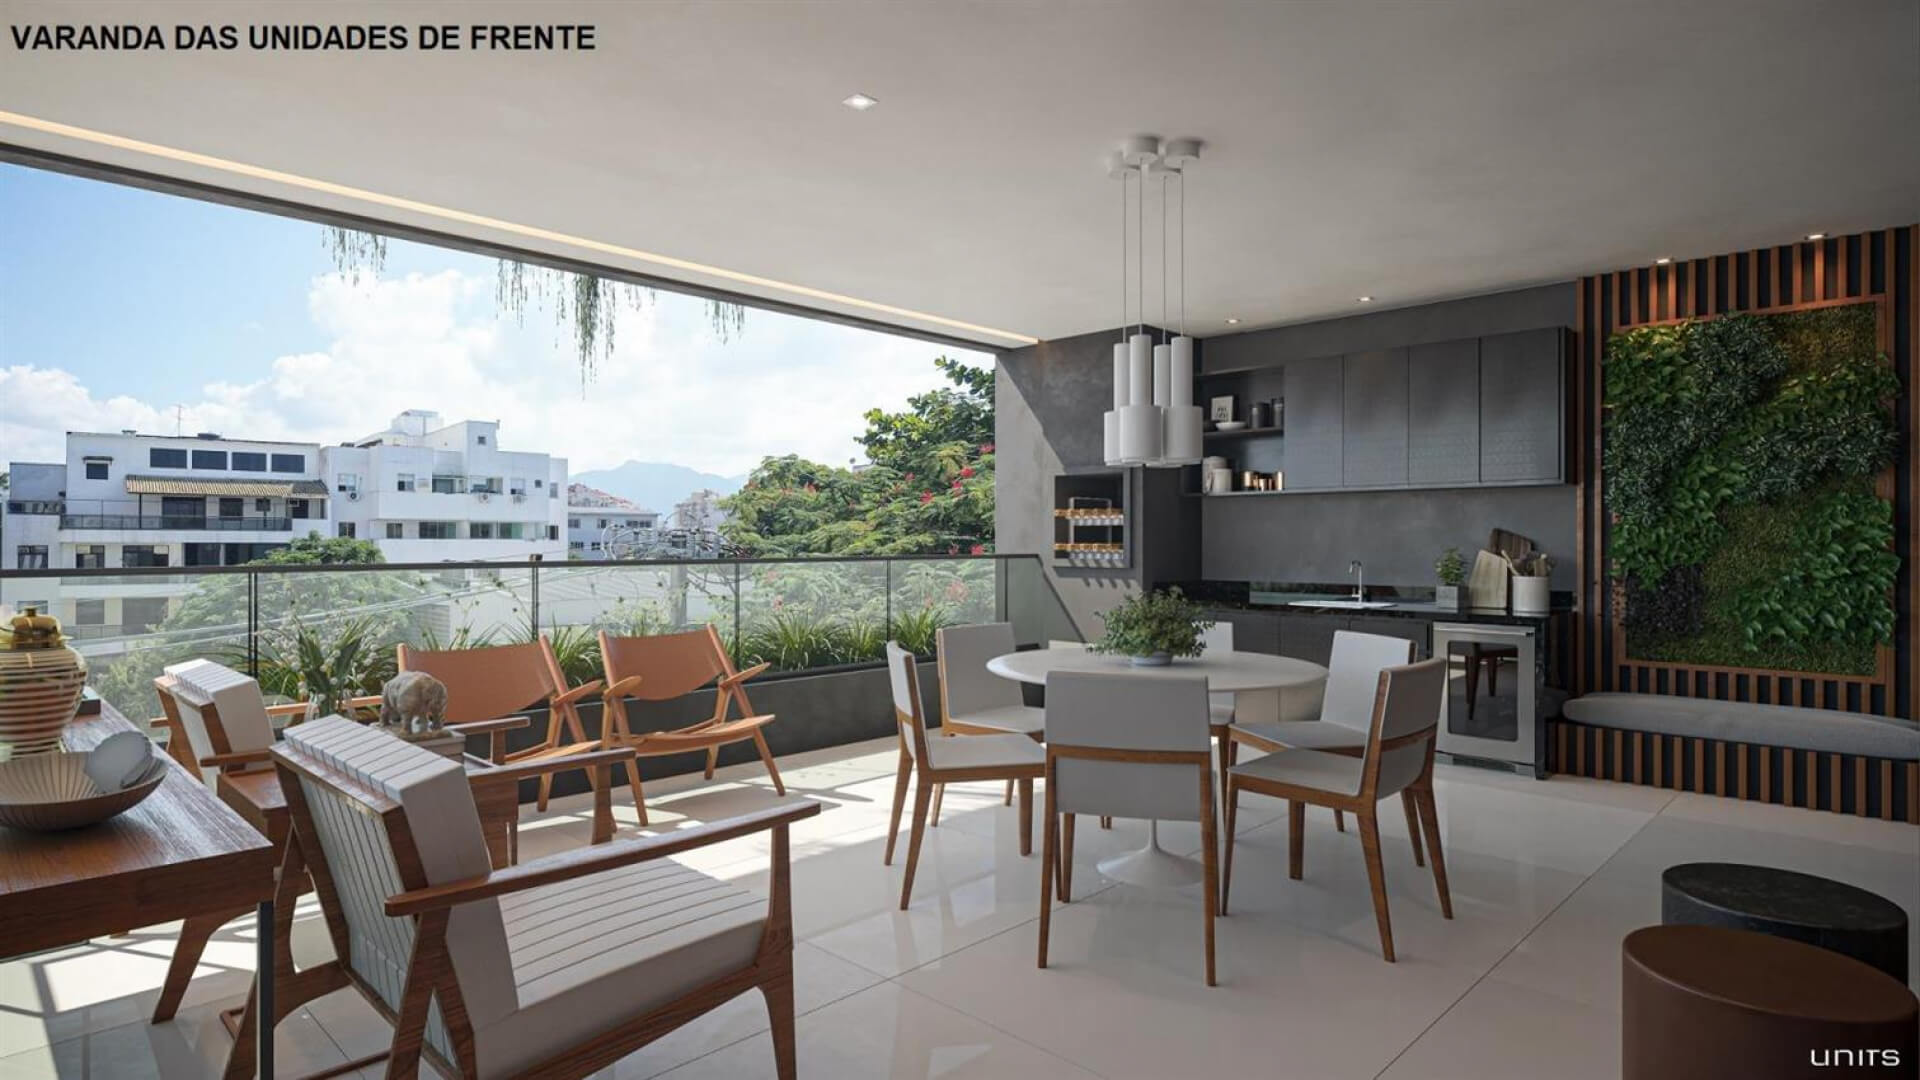 Residencial Assis, foto 4